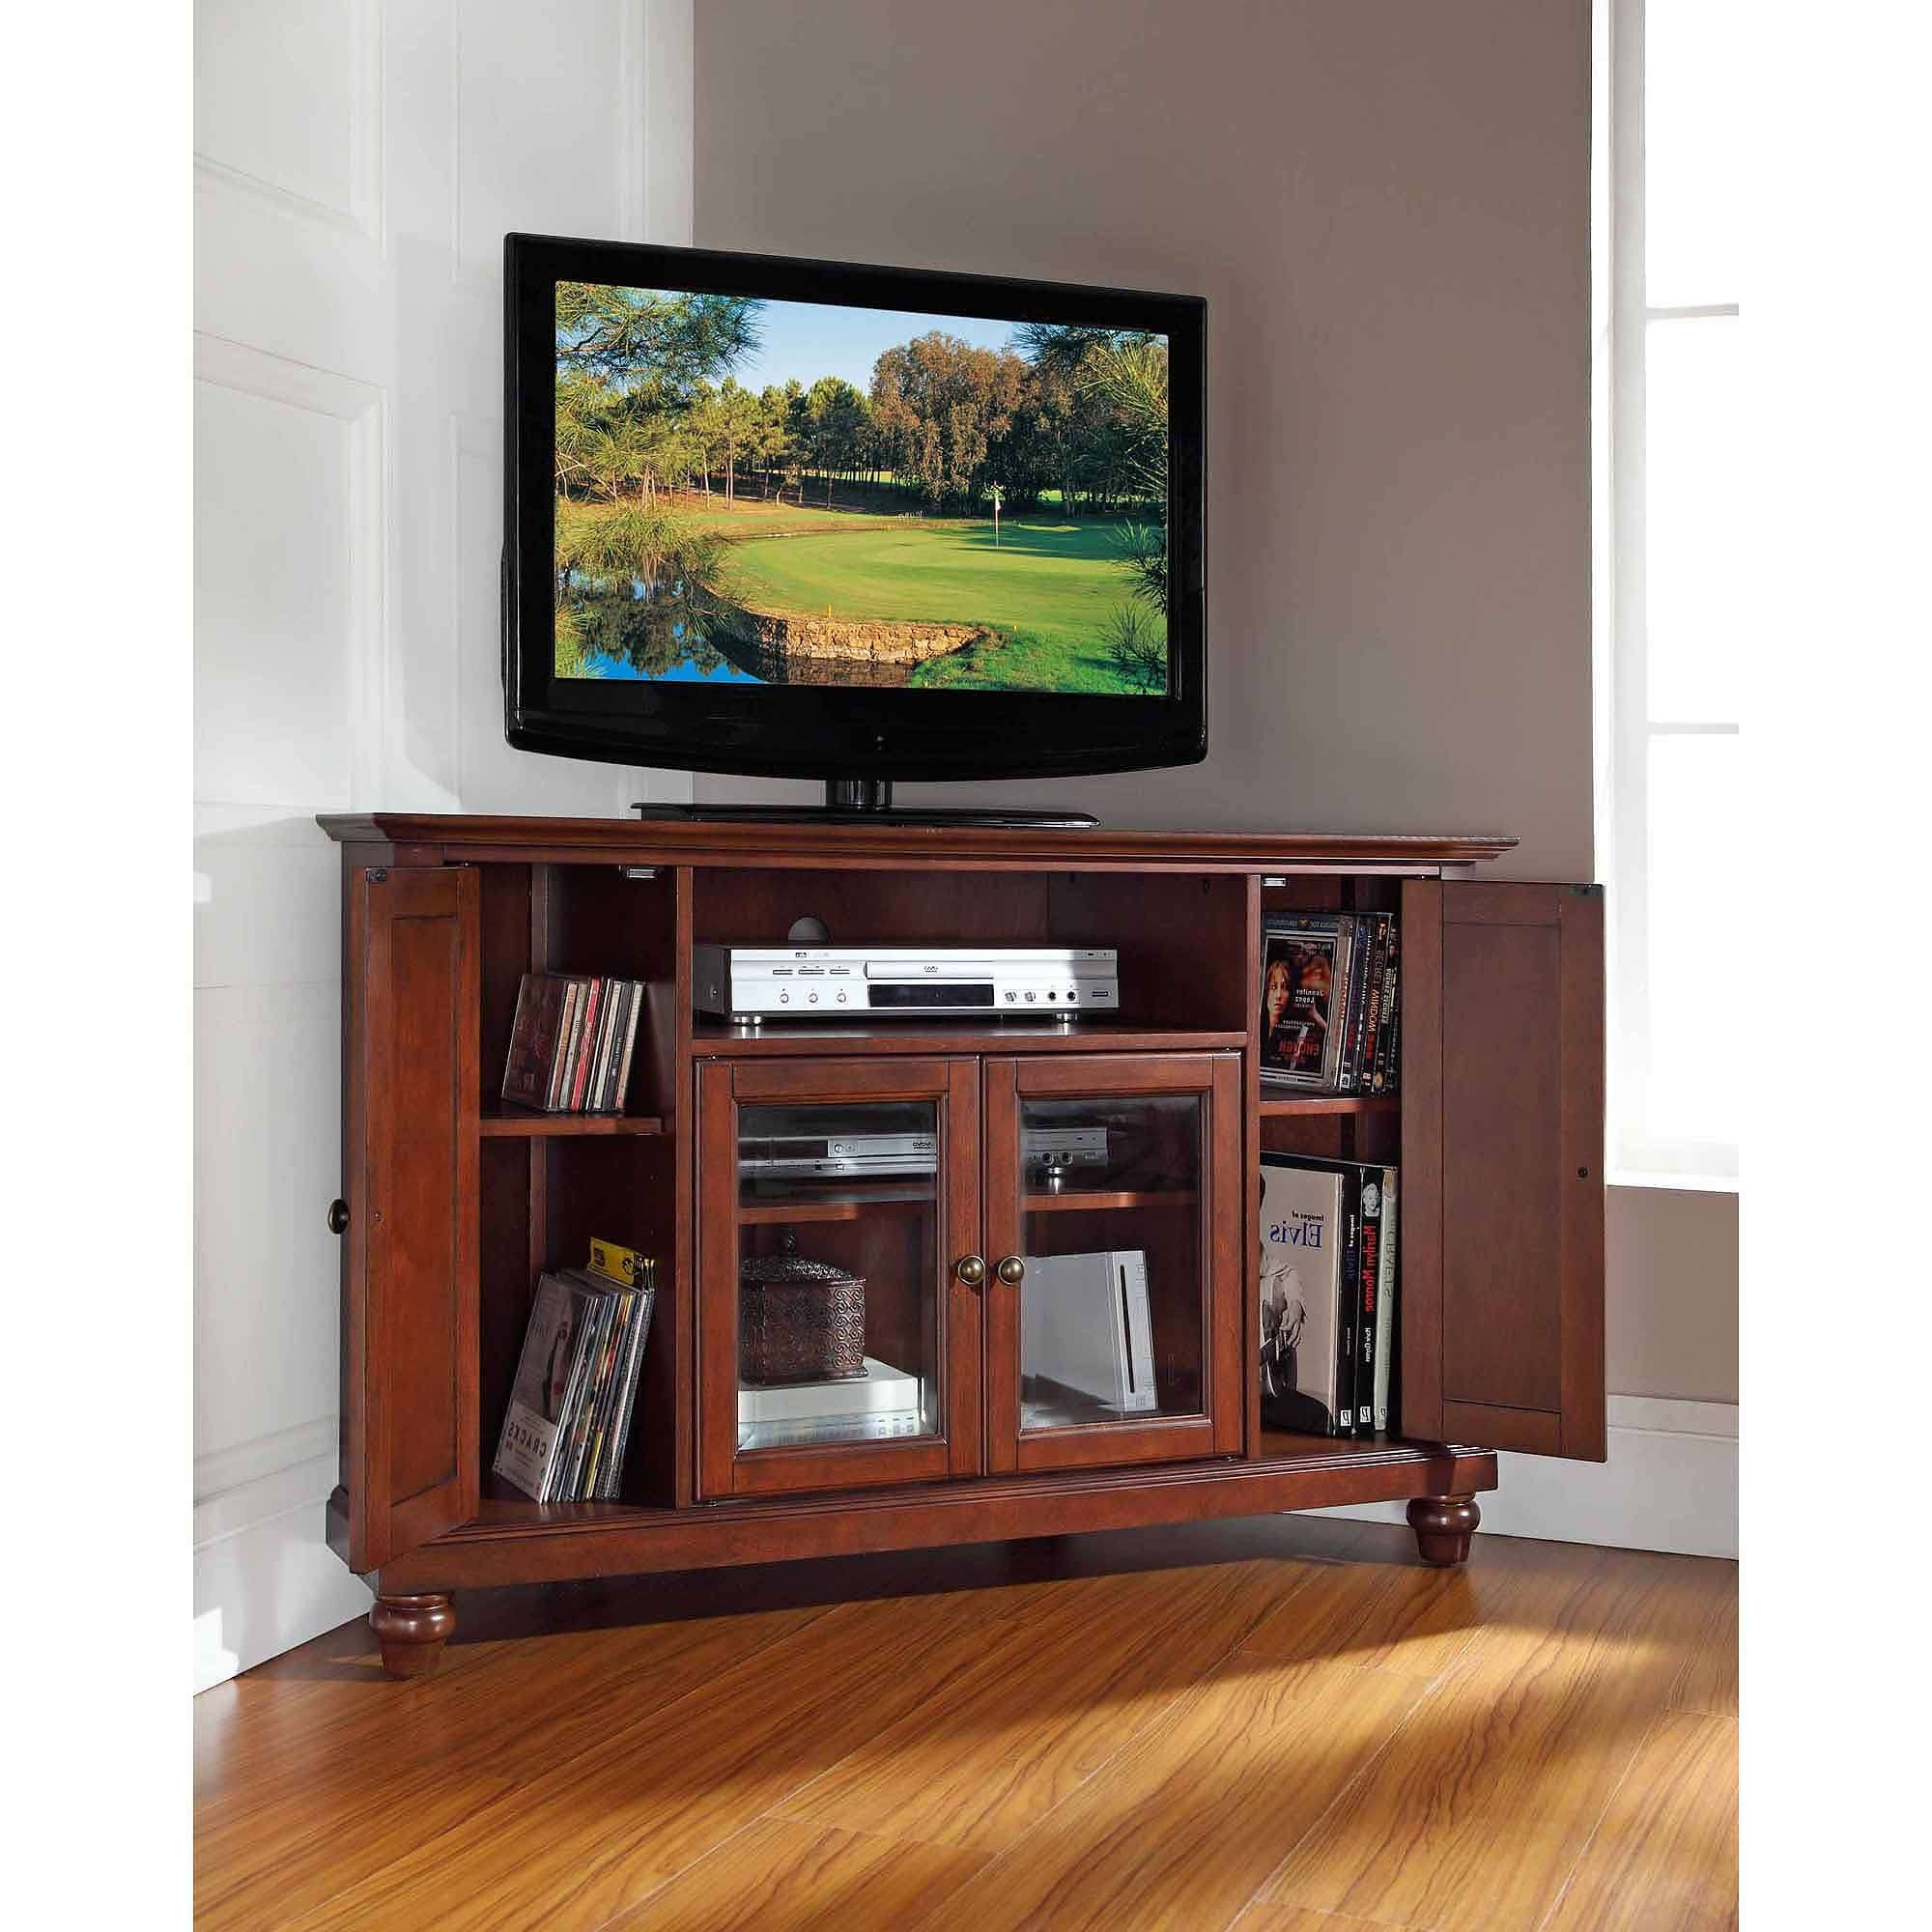 Tv : 41 Stunning 40 Inch Tv Stand Wood Photos Concept Stunning In Corner Tv Stands 40 Inch (View 8 of 20)